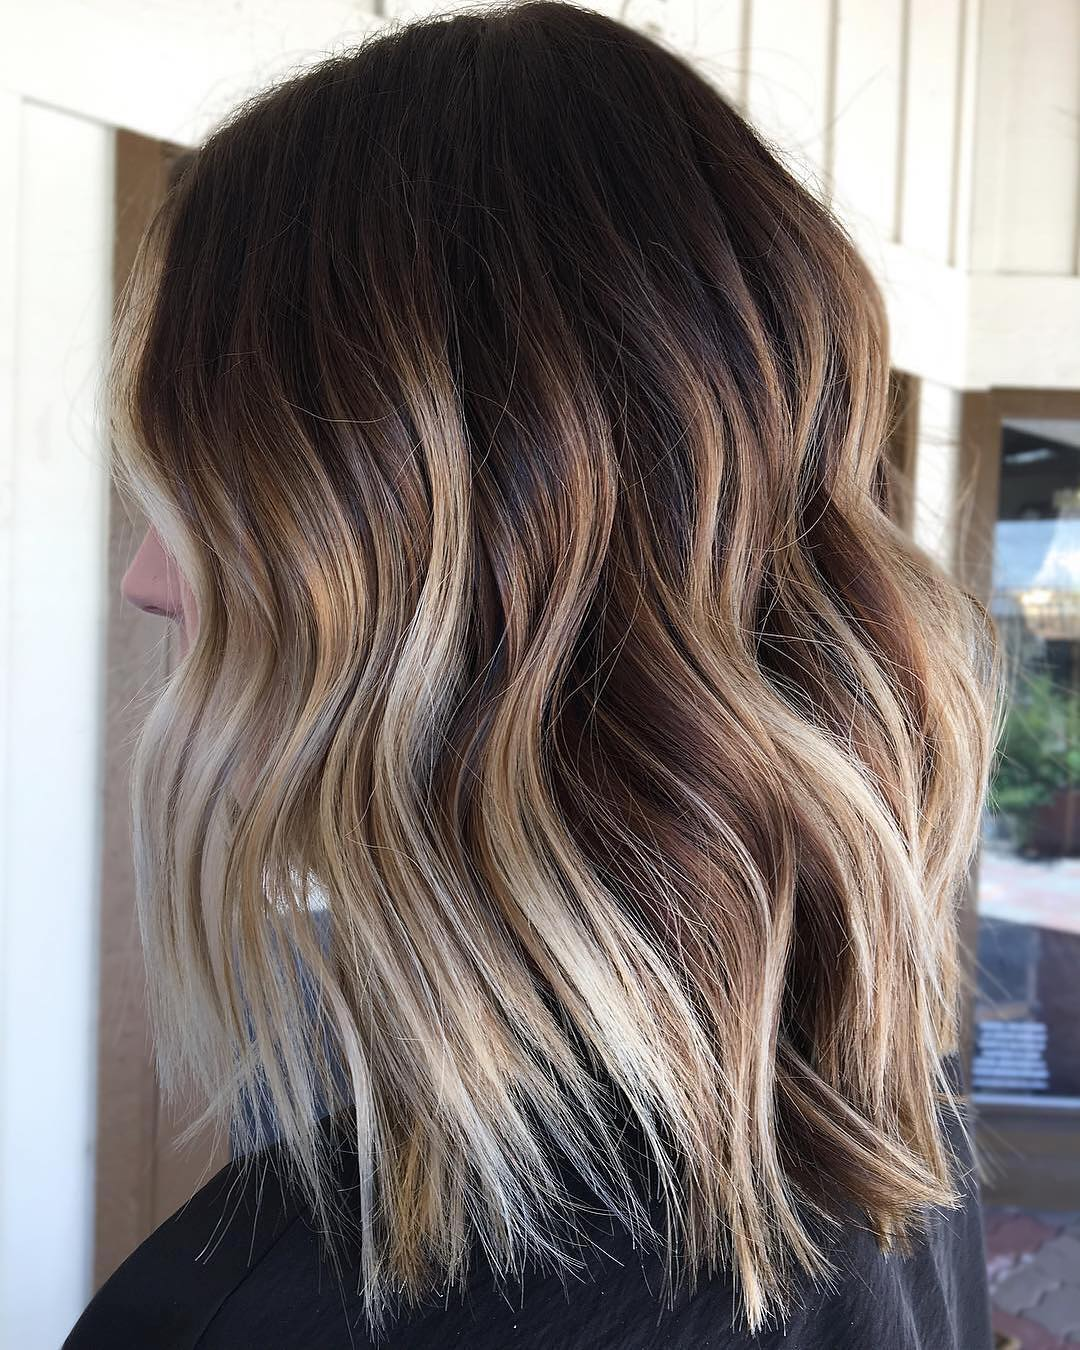 10 Trendy Brown Balayage Hairstyles for Medium,Length Hair 2019